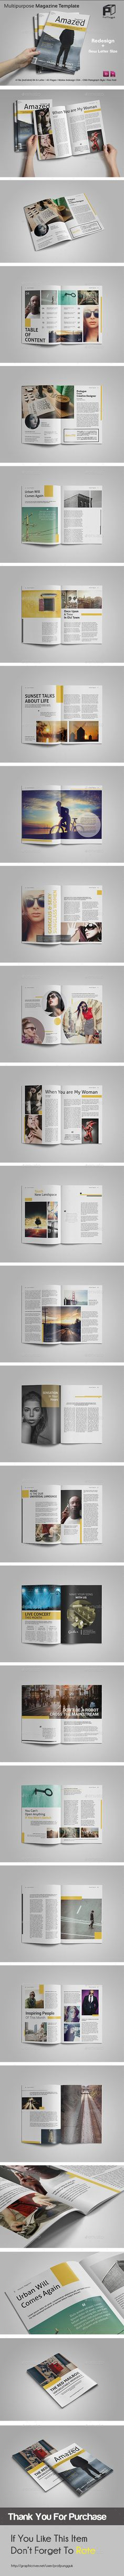 Multipurpose Magazine Vol.1 — InDesign INDD #modern #multi function • Available here → https://graphicriver.net/item/multipurpose-magazine-vol1/10803072?ref=pxcr